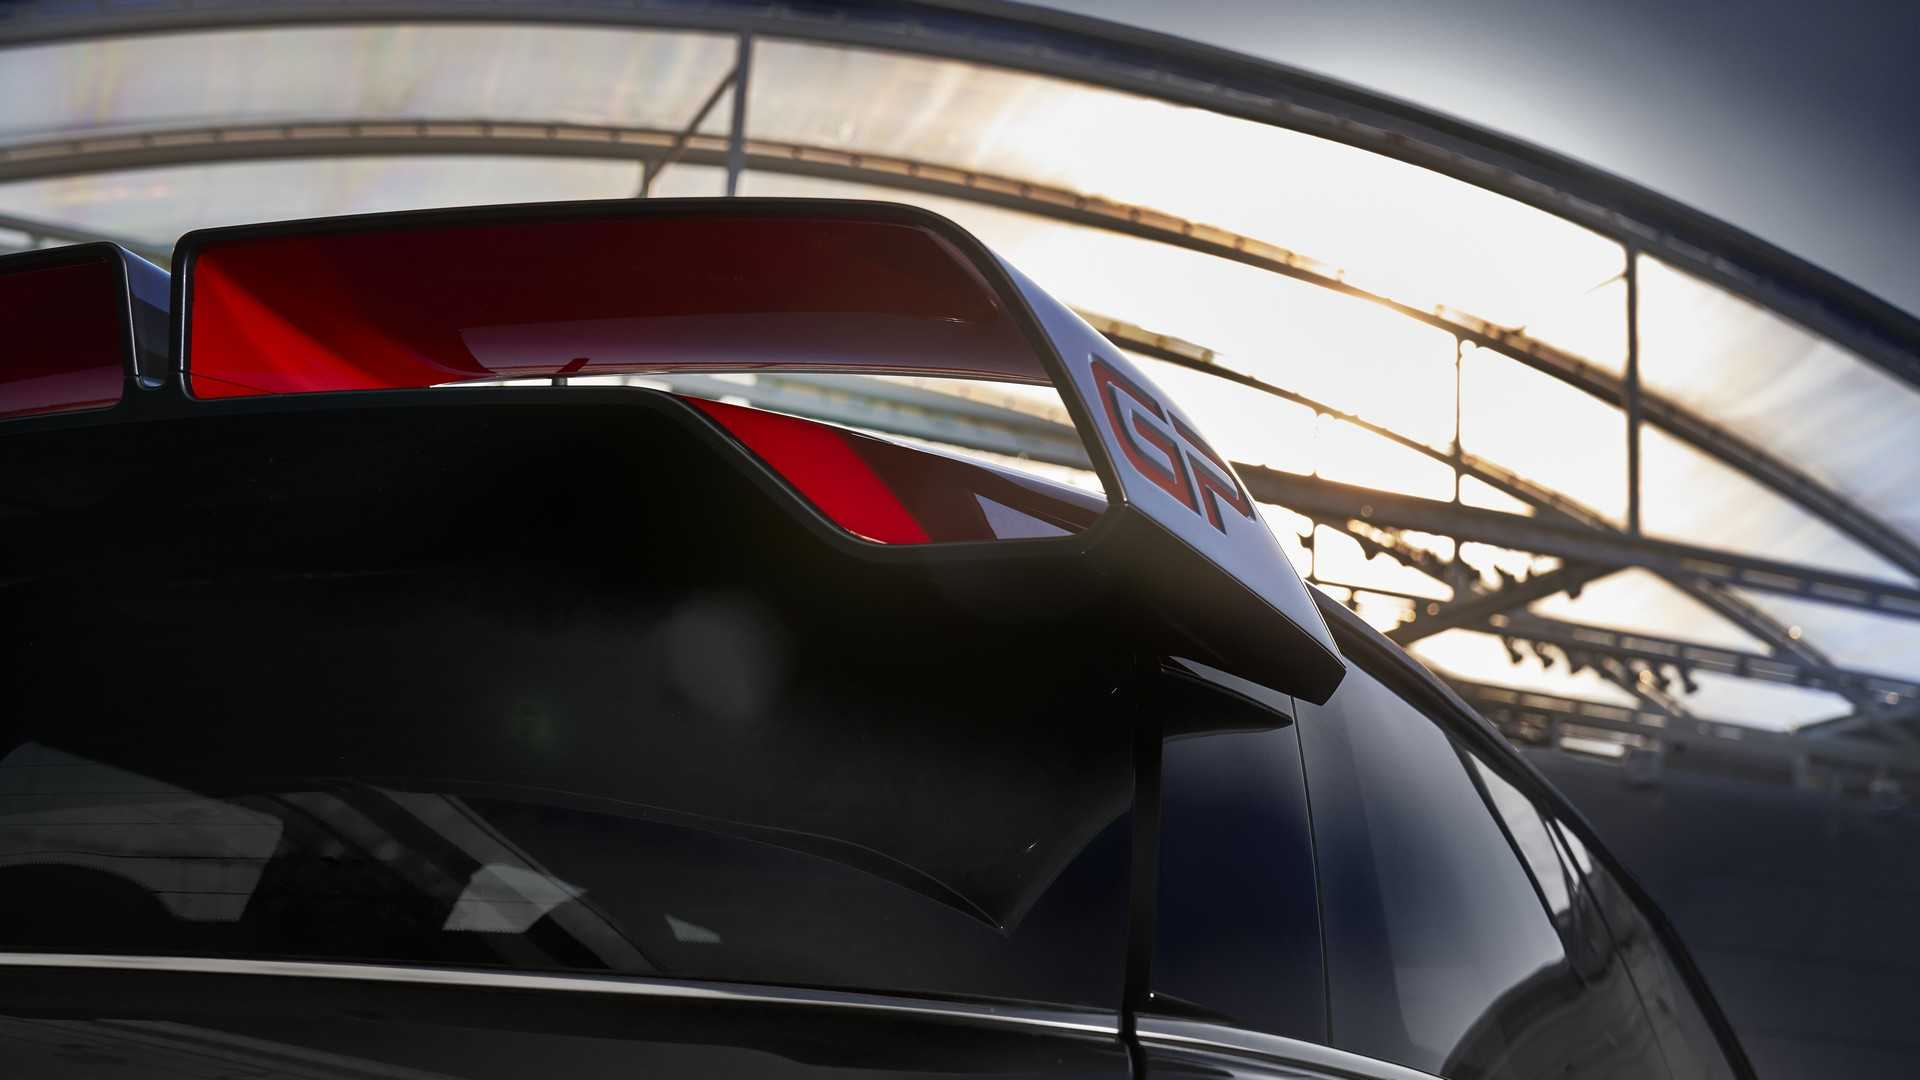 2020 Mini Jcw Gp Teased As Fastest Most Powerful Mini Ever